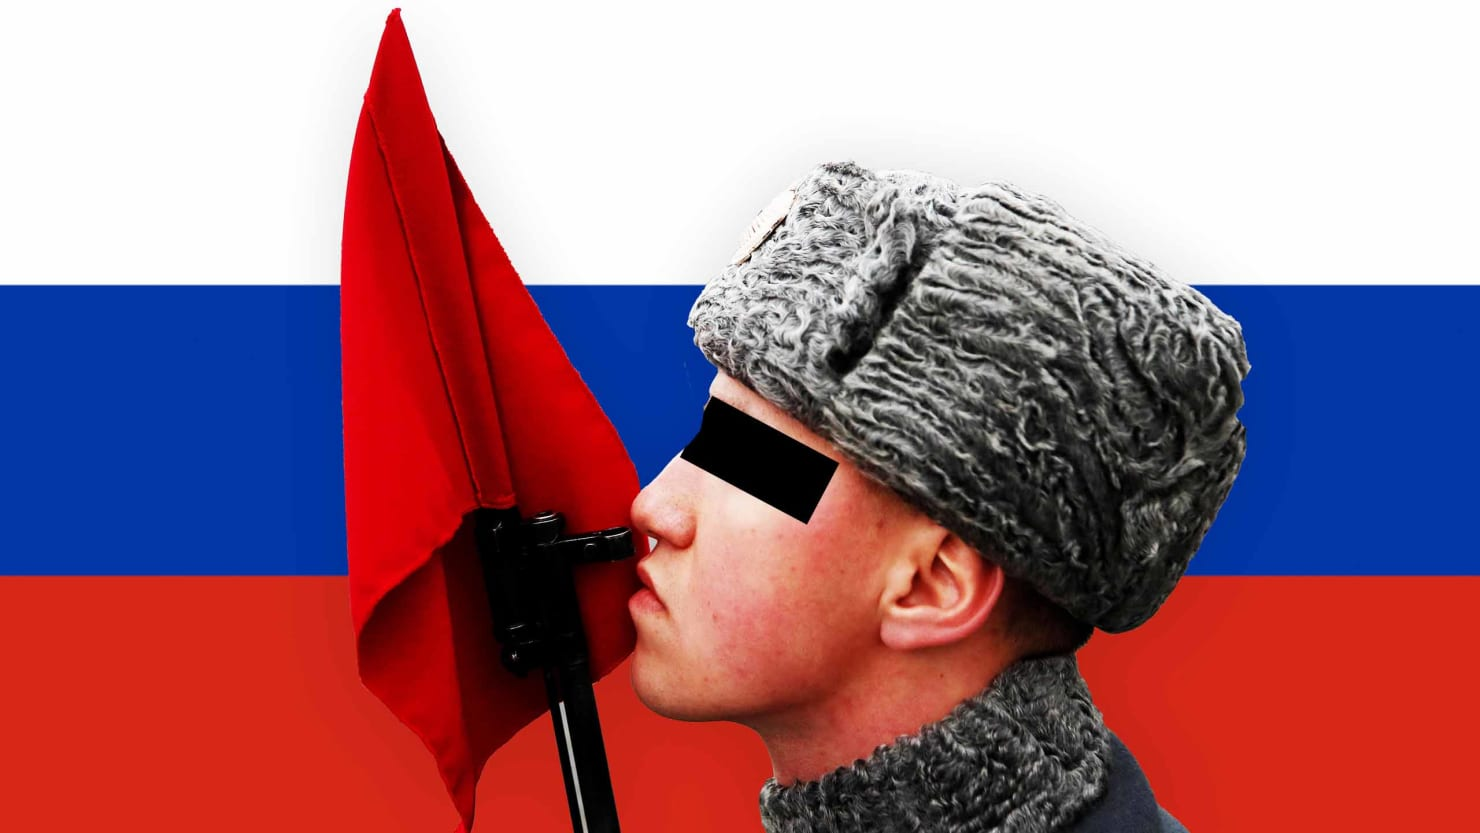 A Russian Blackwater? Putin's Secret Soldiers in Ukraine and Syria